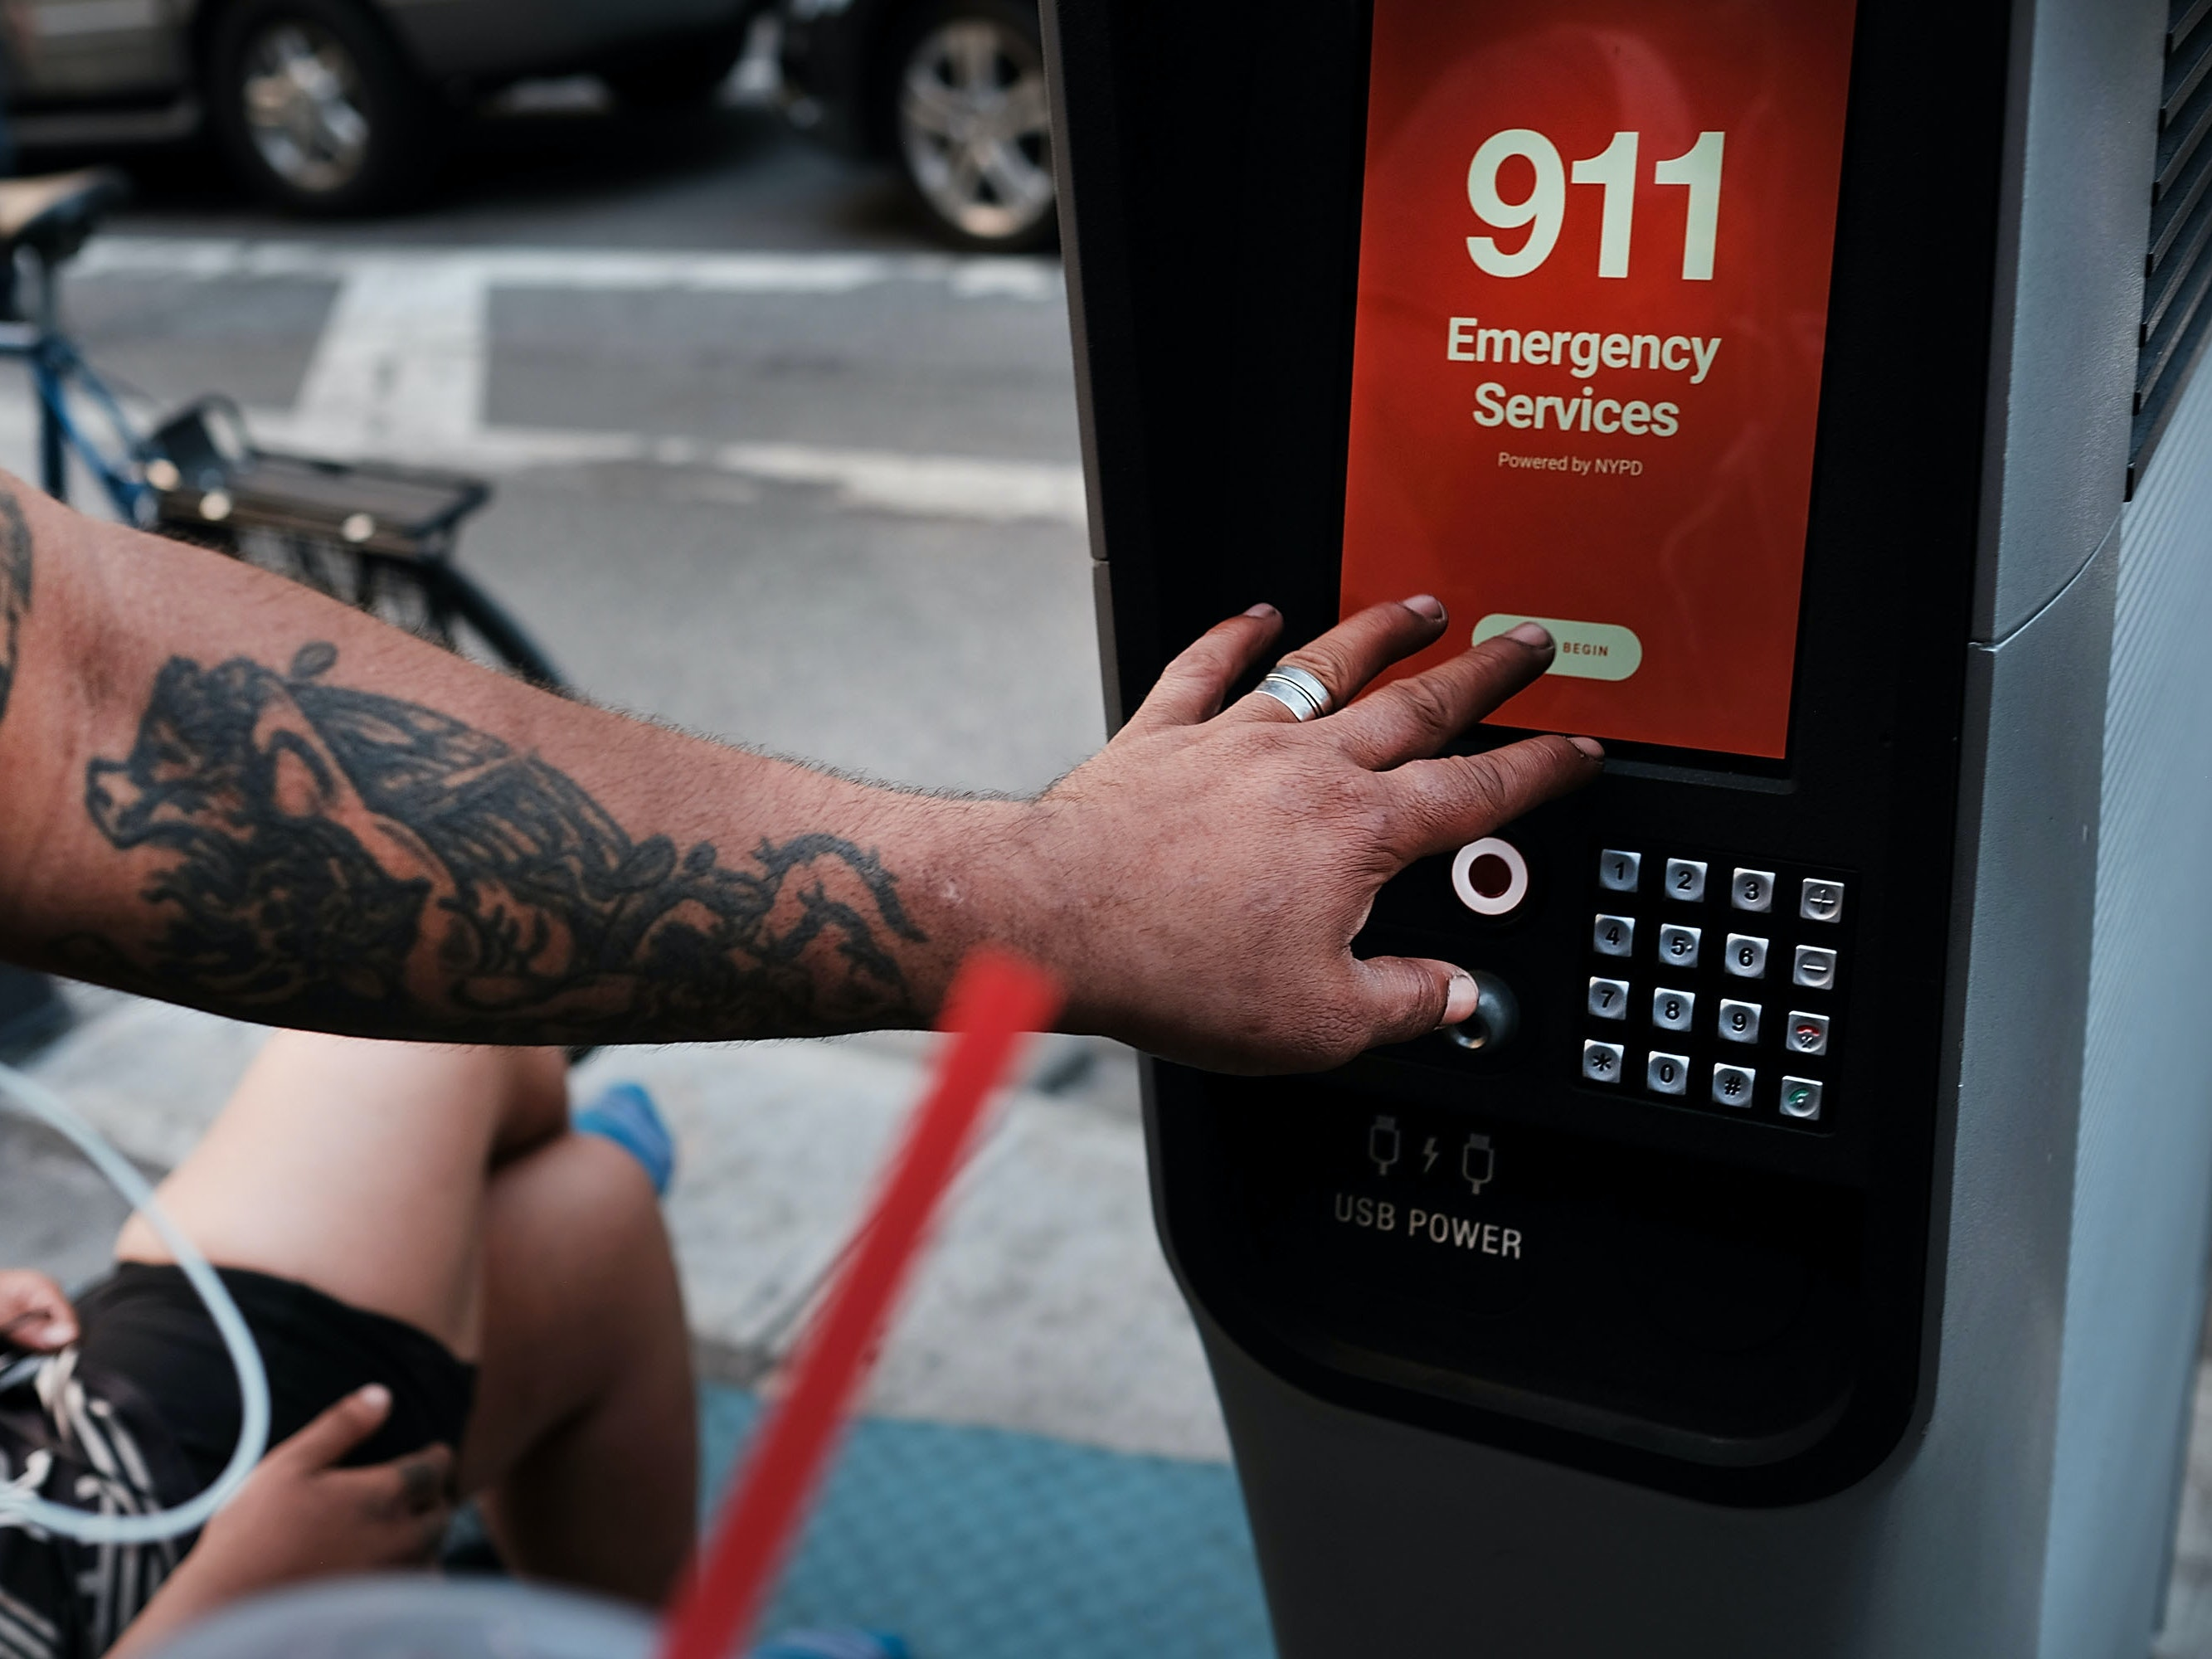 Emergency calling via Link kiosks.